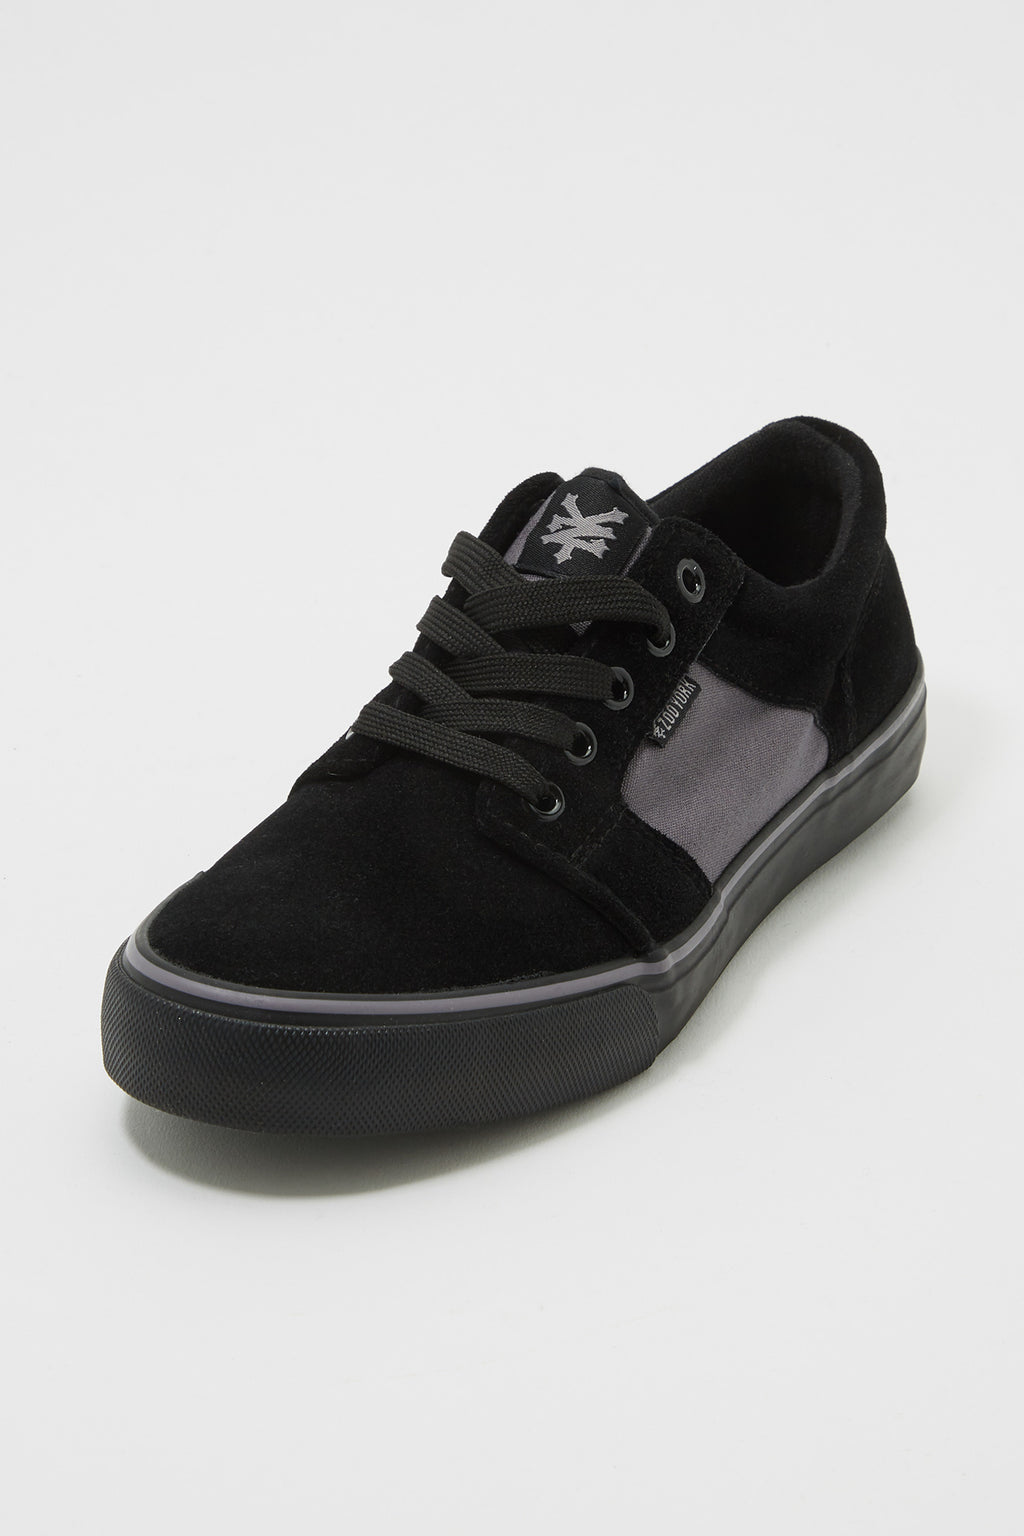 Zoo York Mens Two Tone Lace Up Shoes